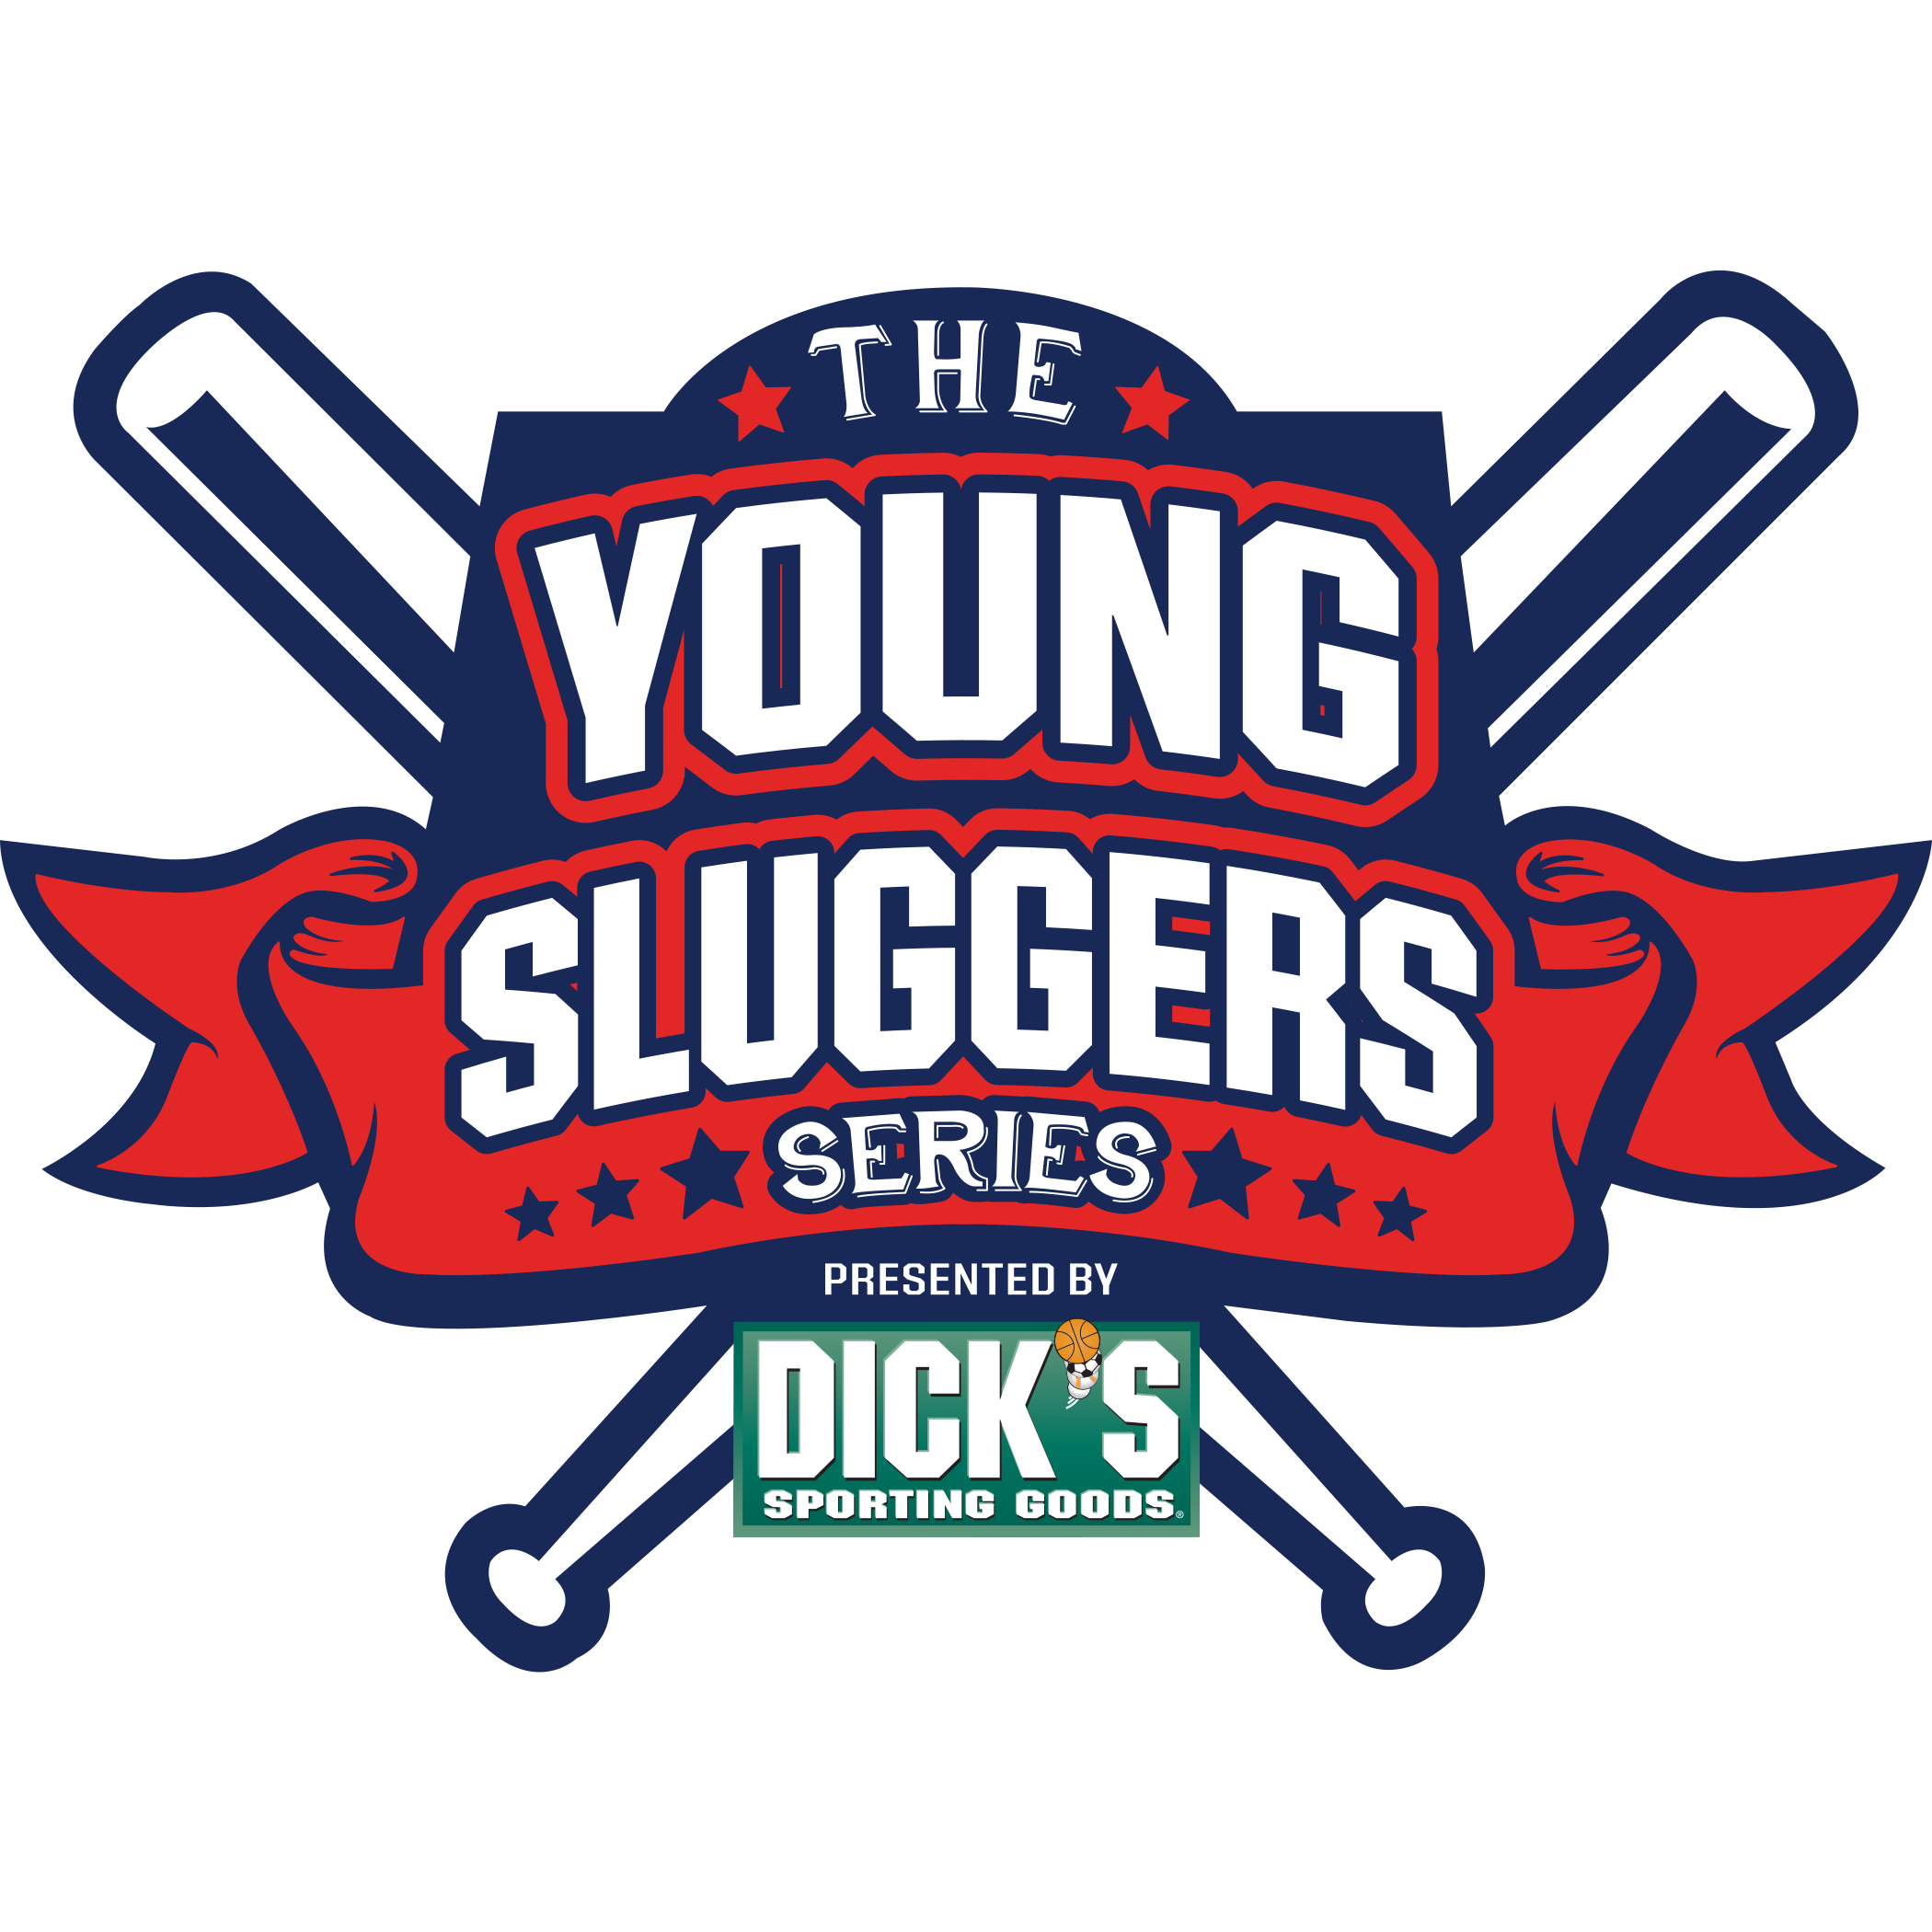 The Young Sluggers Series: Presented by Dick's Sporting Goods | Rings Event